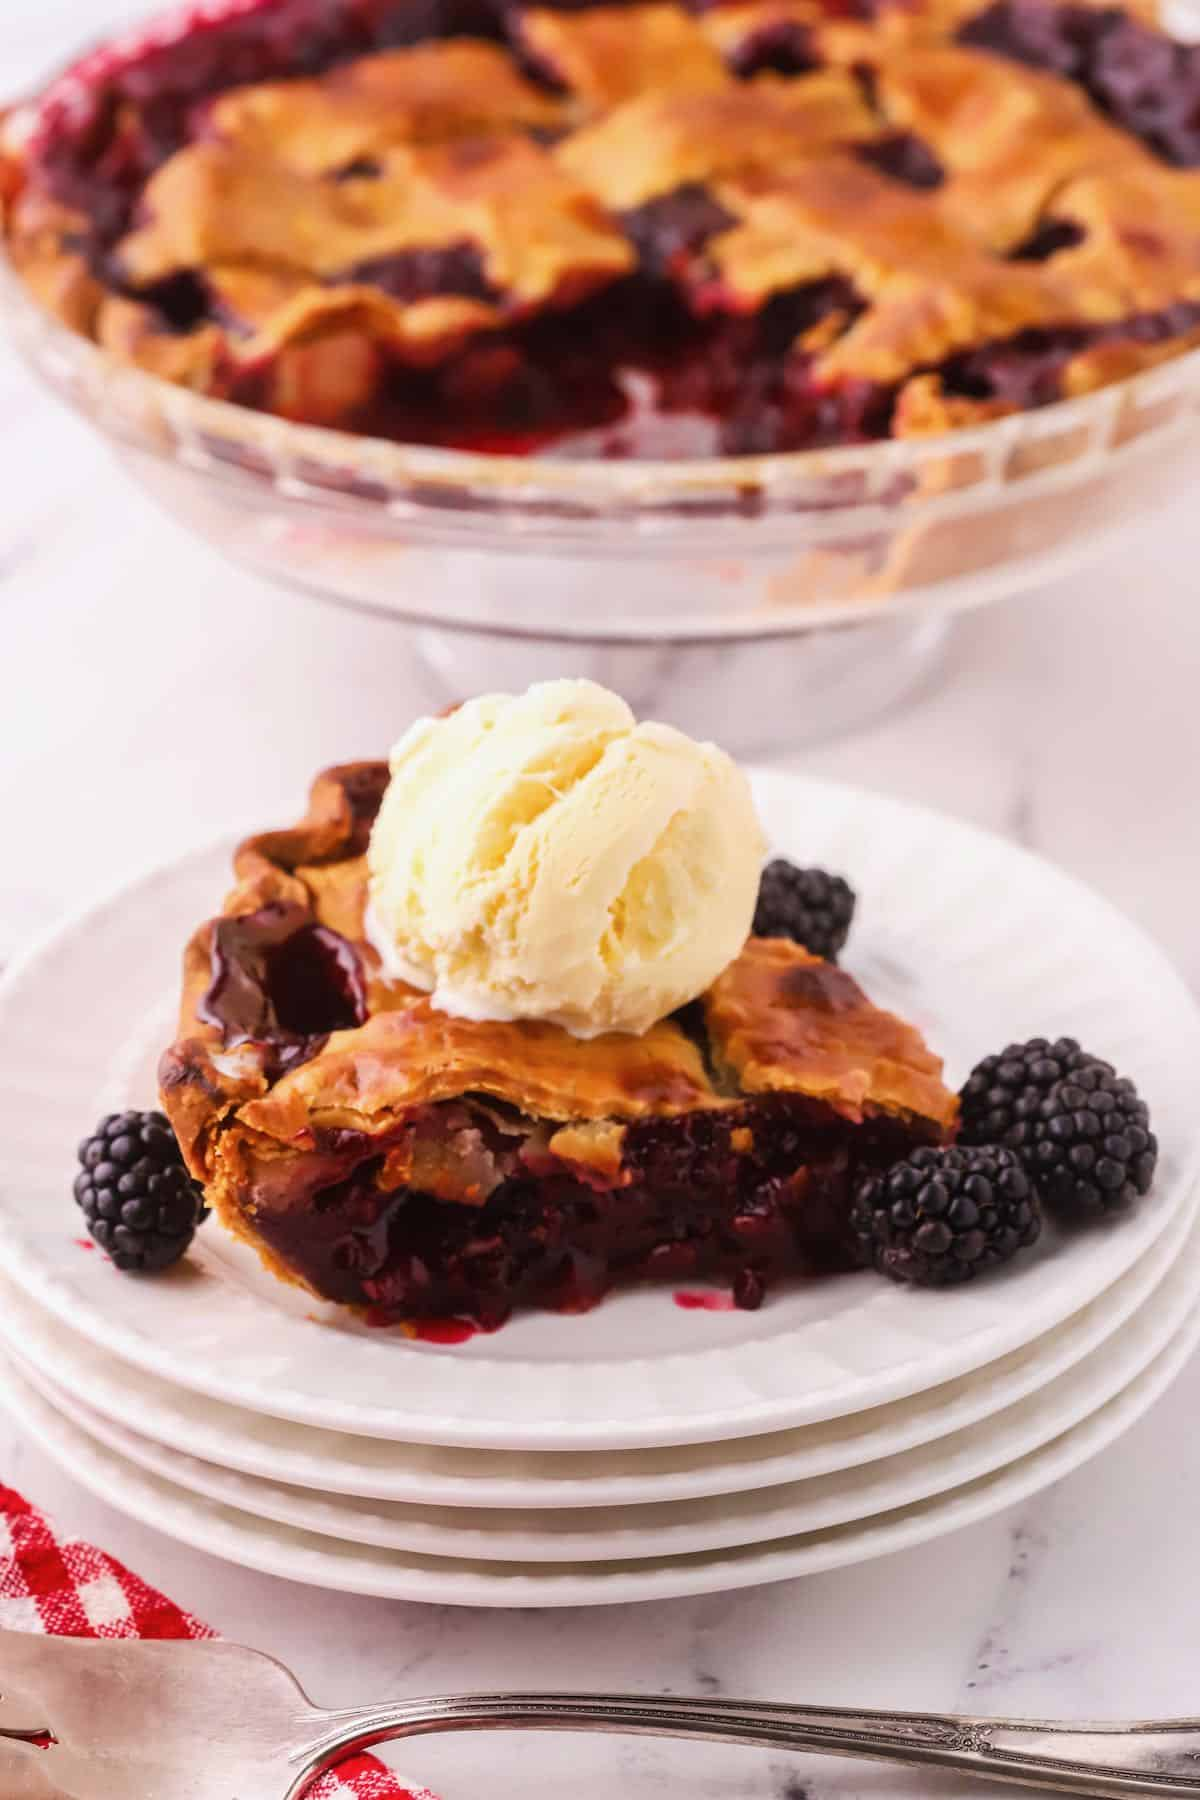 Blackberry pie slice on a plate topped with vanilla ice cream.